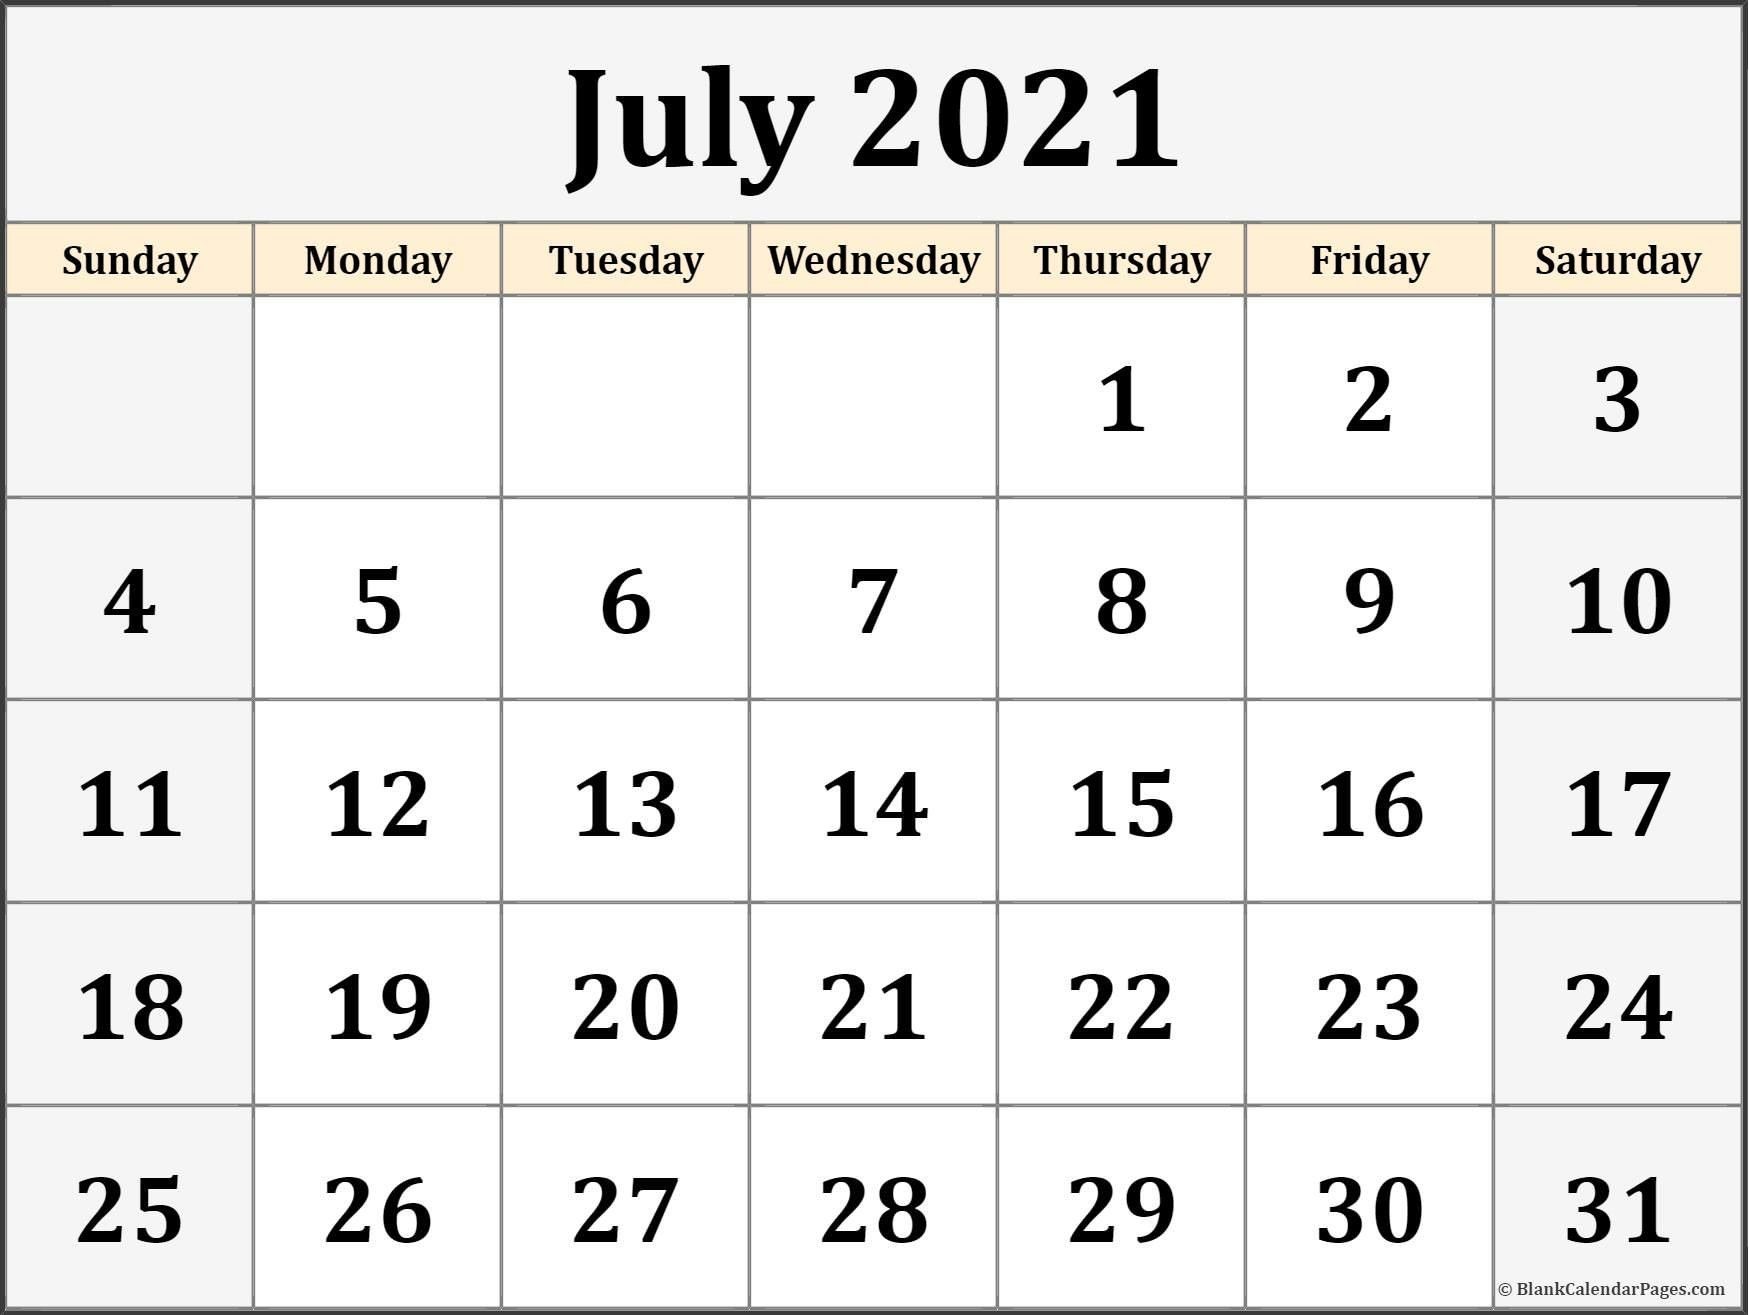 July 2021 Calendar Printable Blank – Allowed To Our Blog